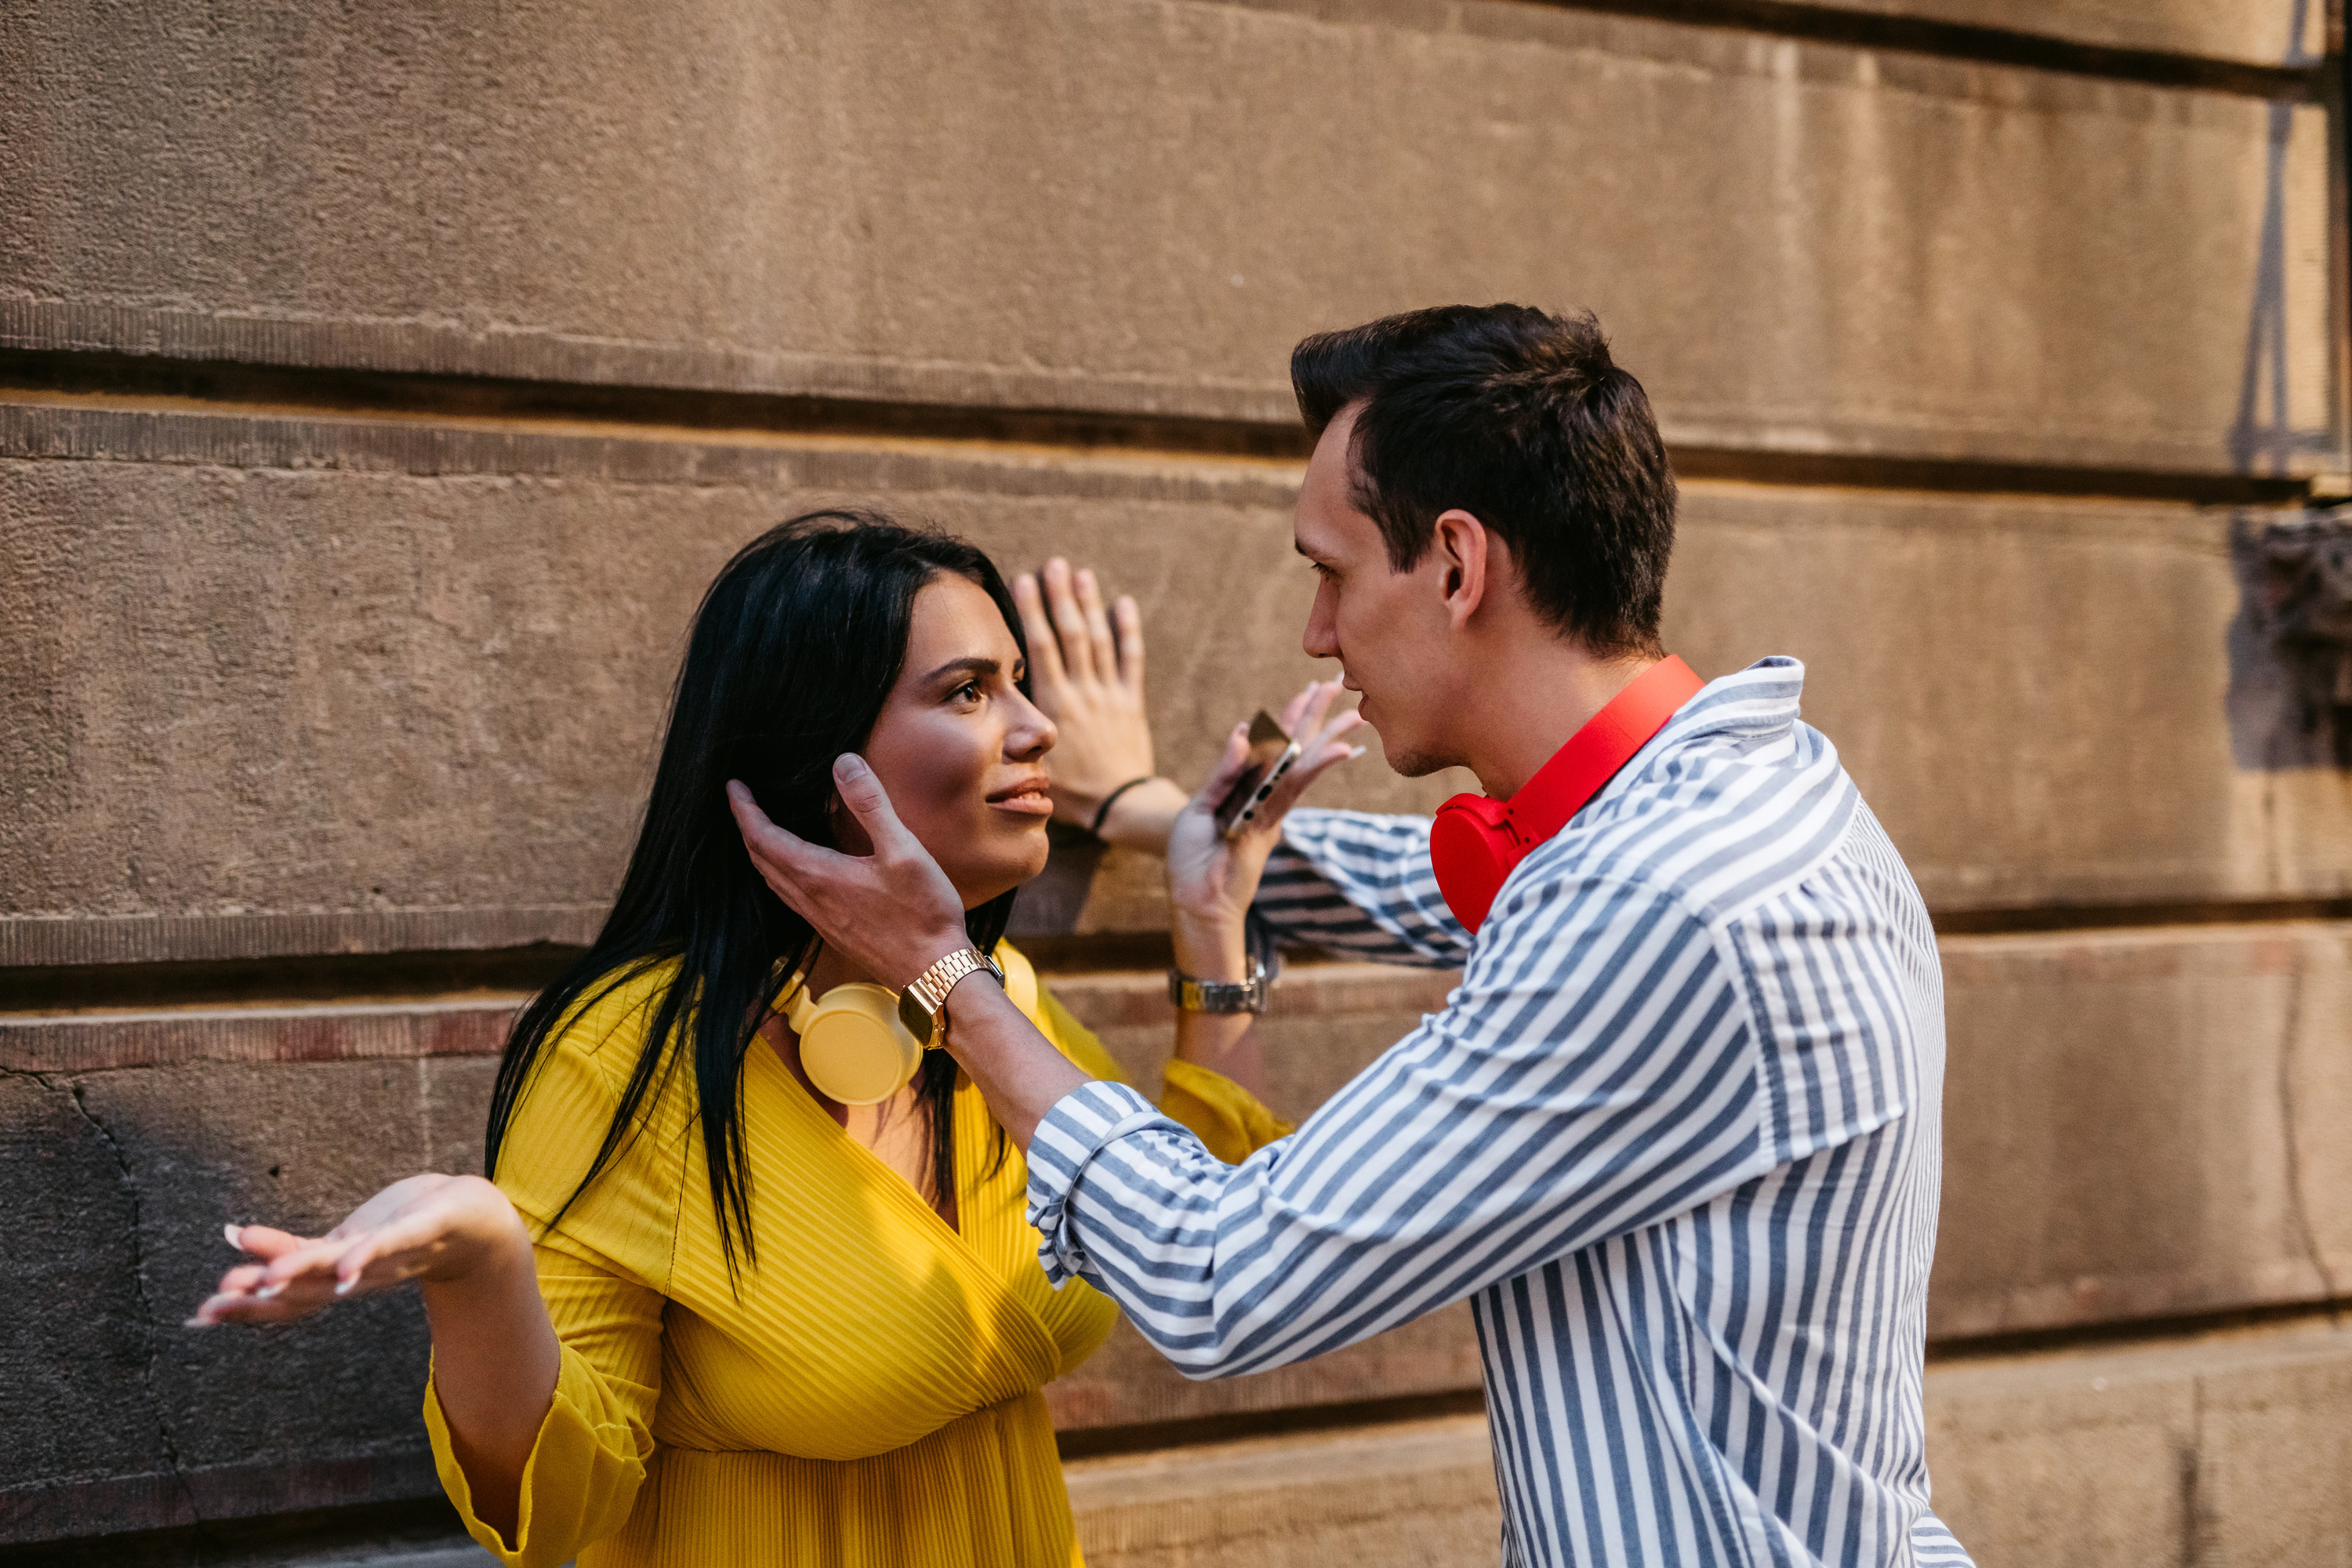 Photo of a girl and a guy arguing